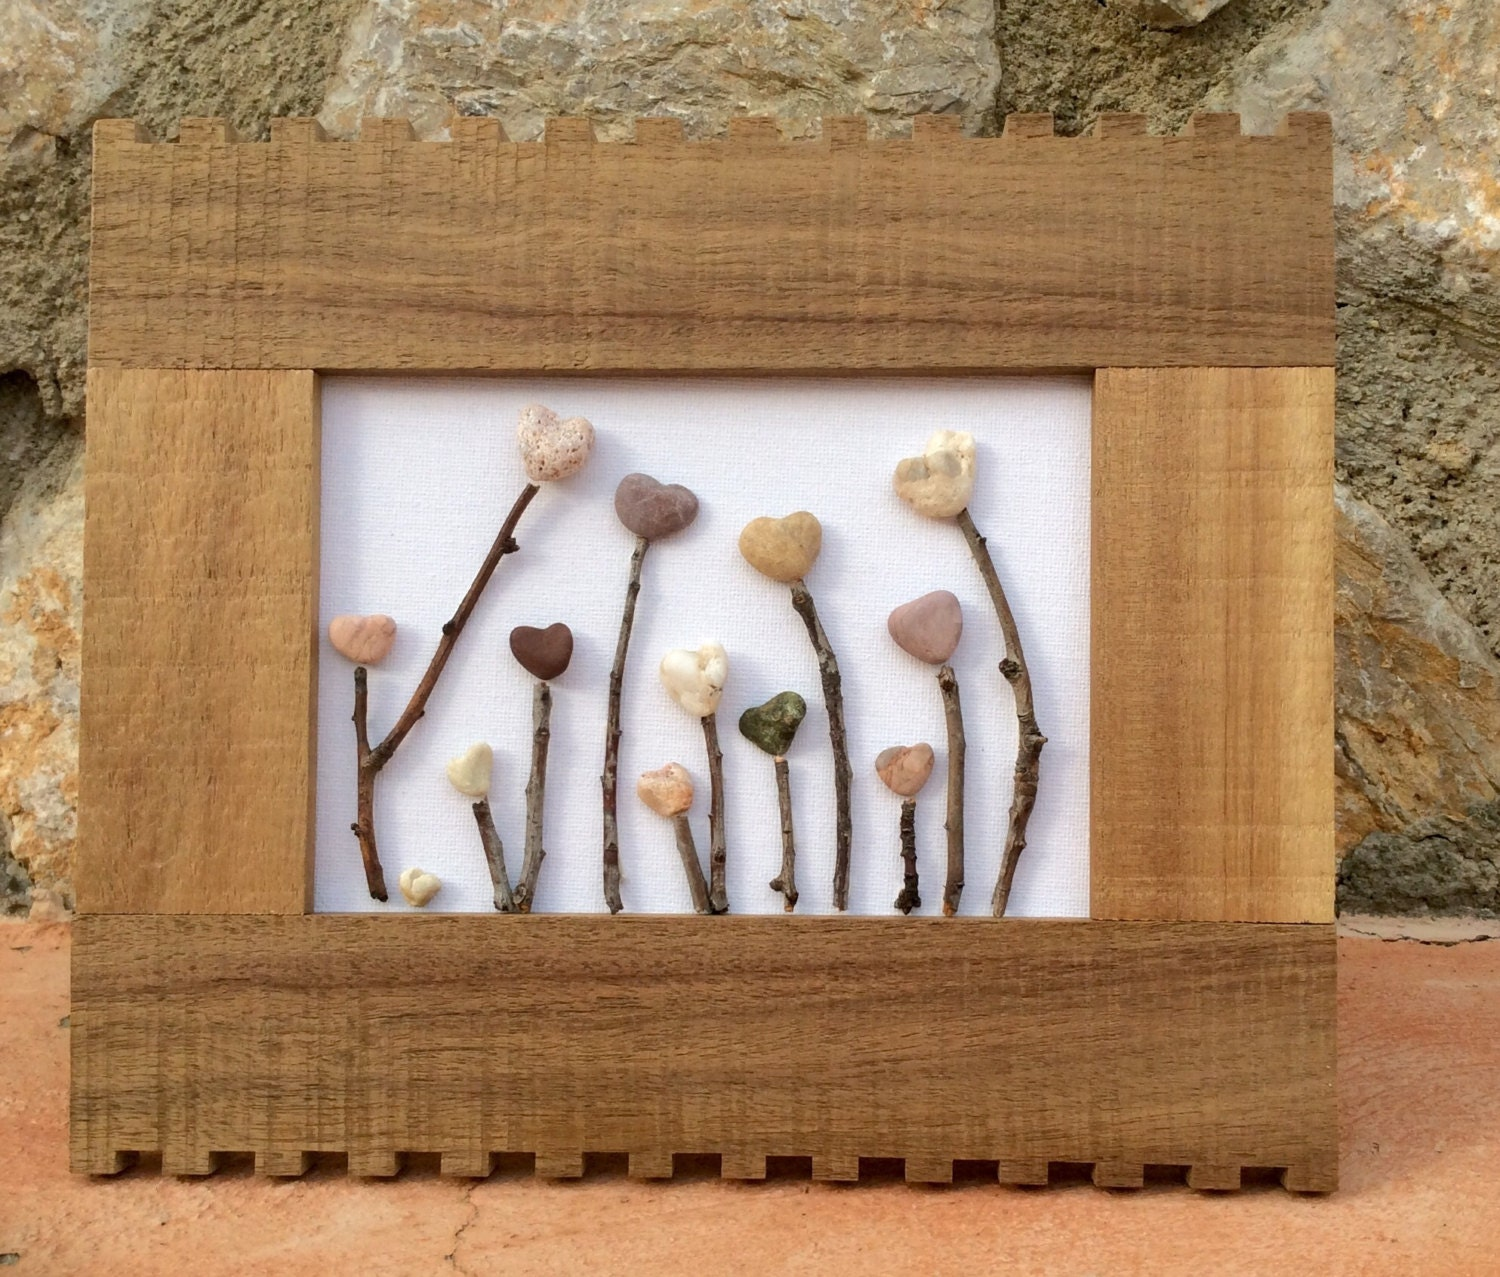 Stoner wall art elitflat pebble art beach pebble picture heartscape in wooden frame solutioingenieria Gallery